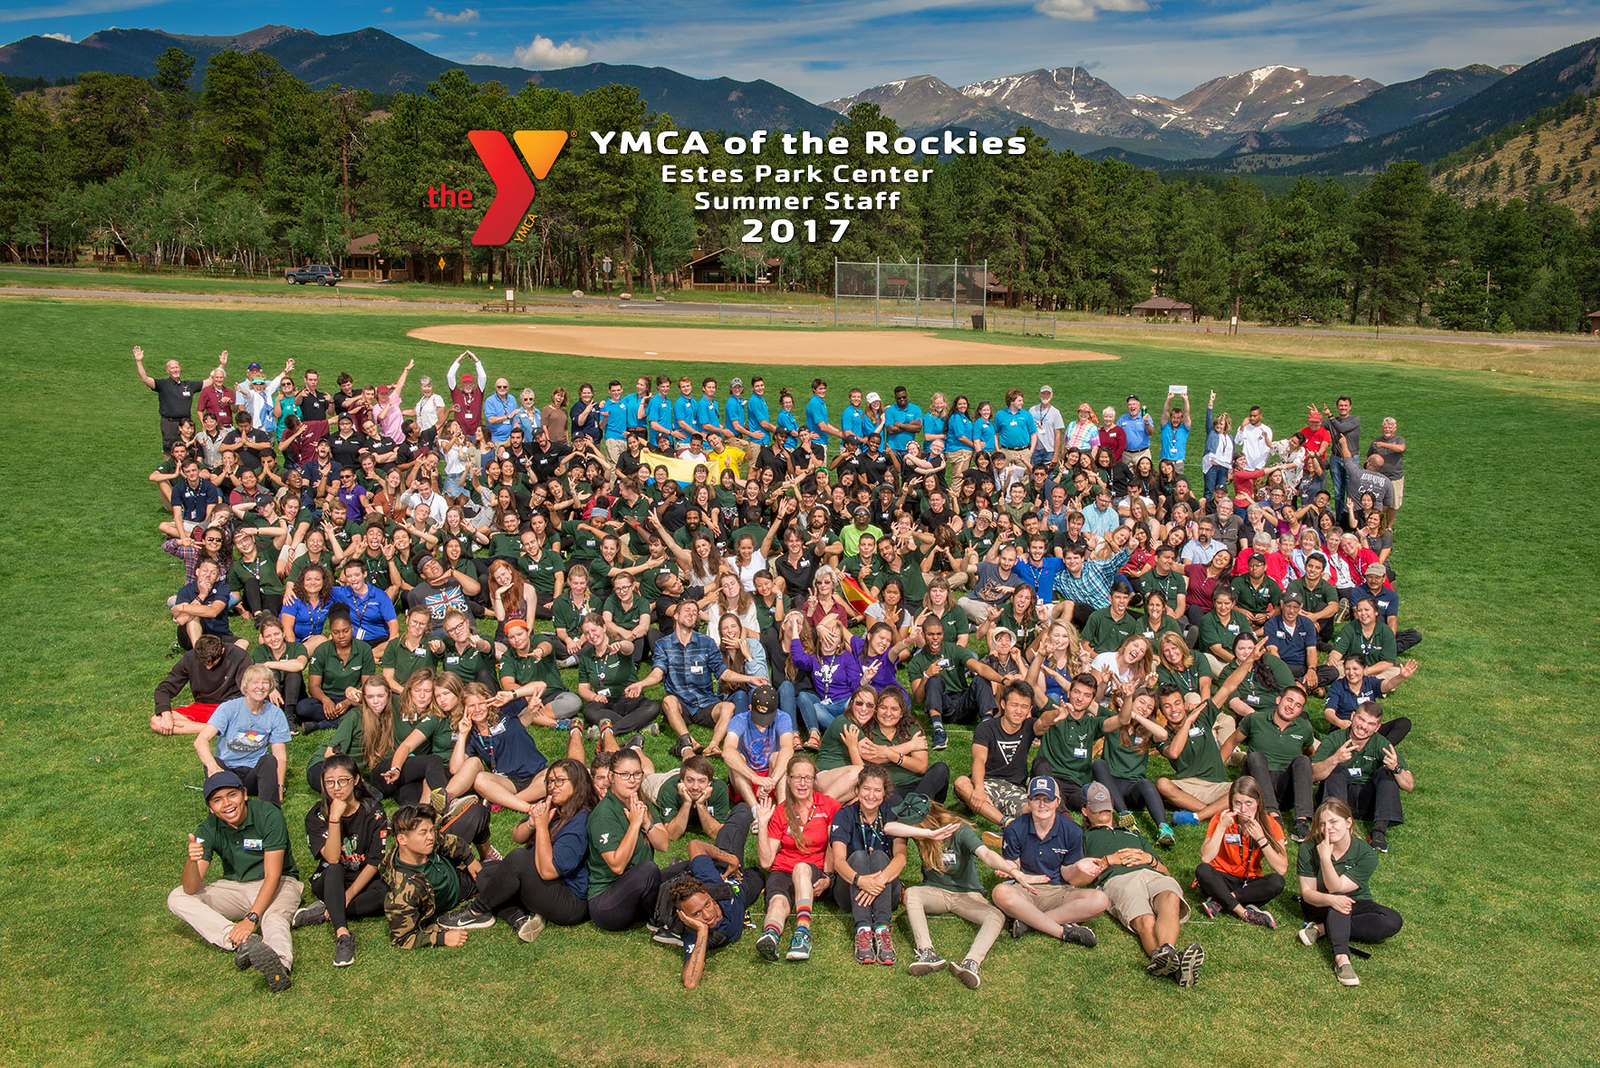 YMCA-EPC-Summer-Staff-FunShot-2017-Small72dpi